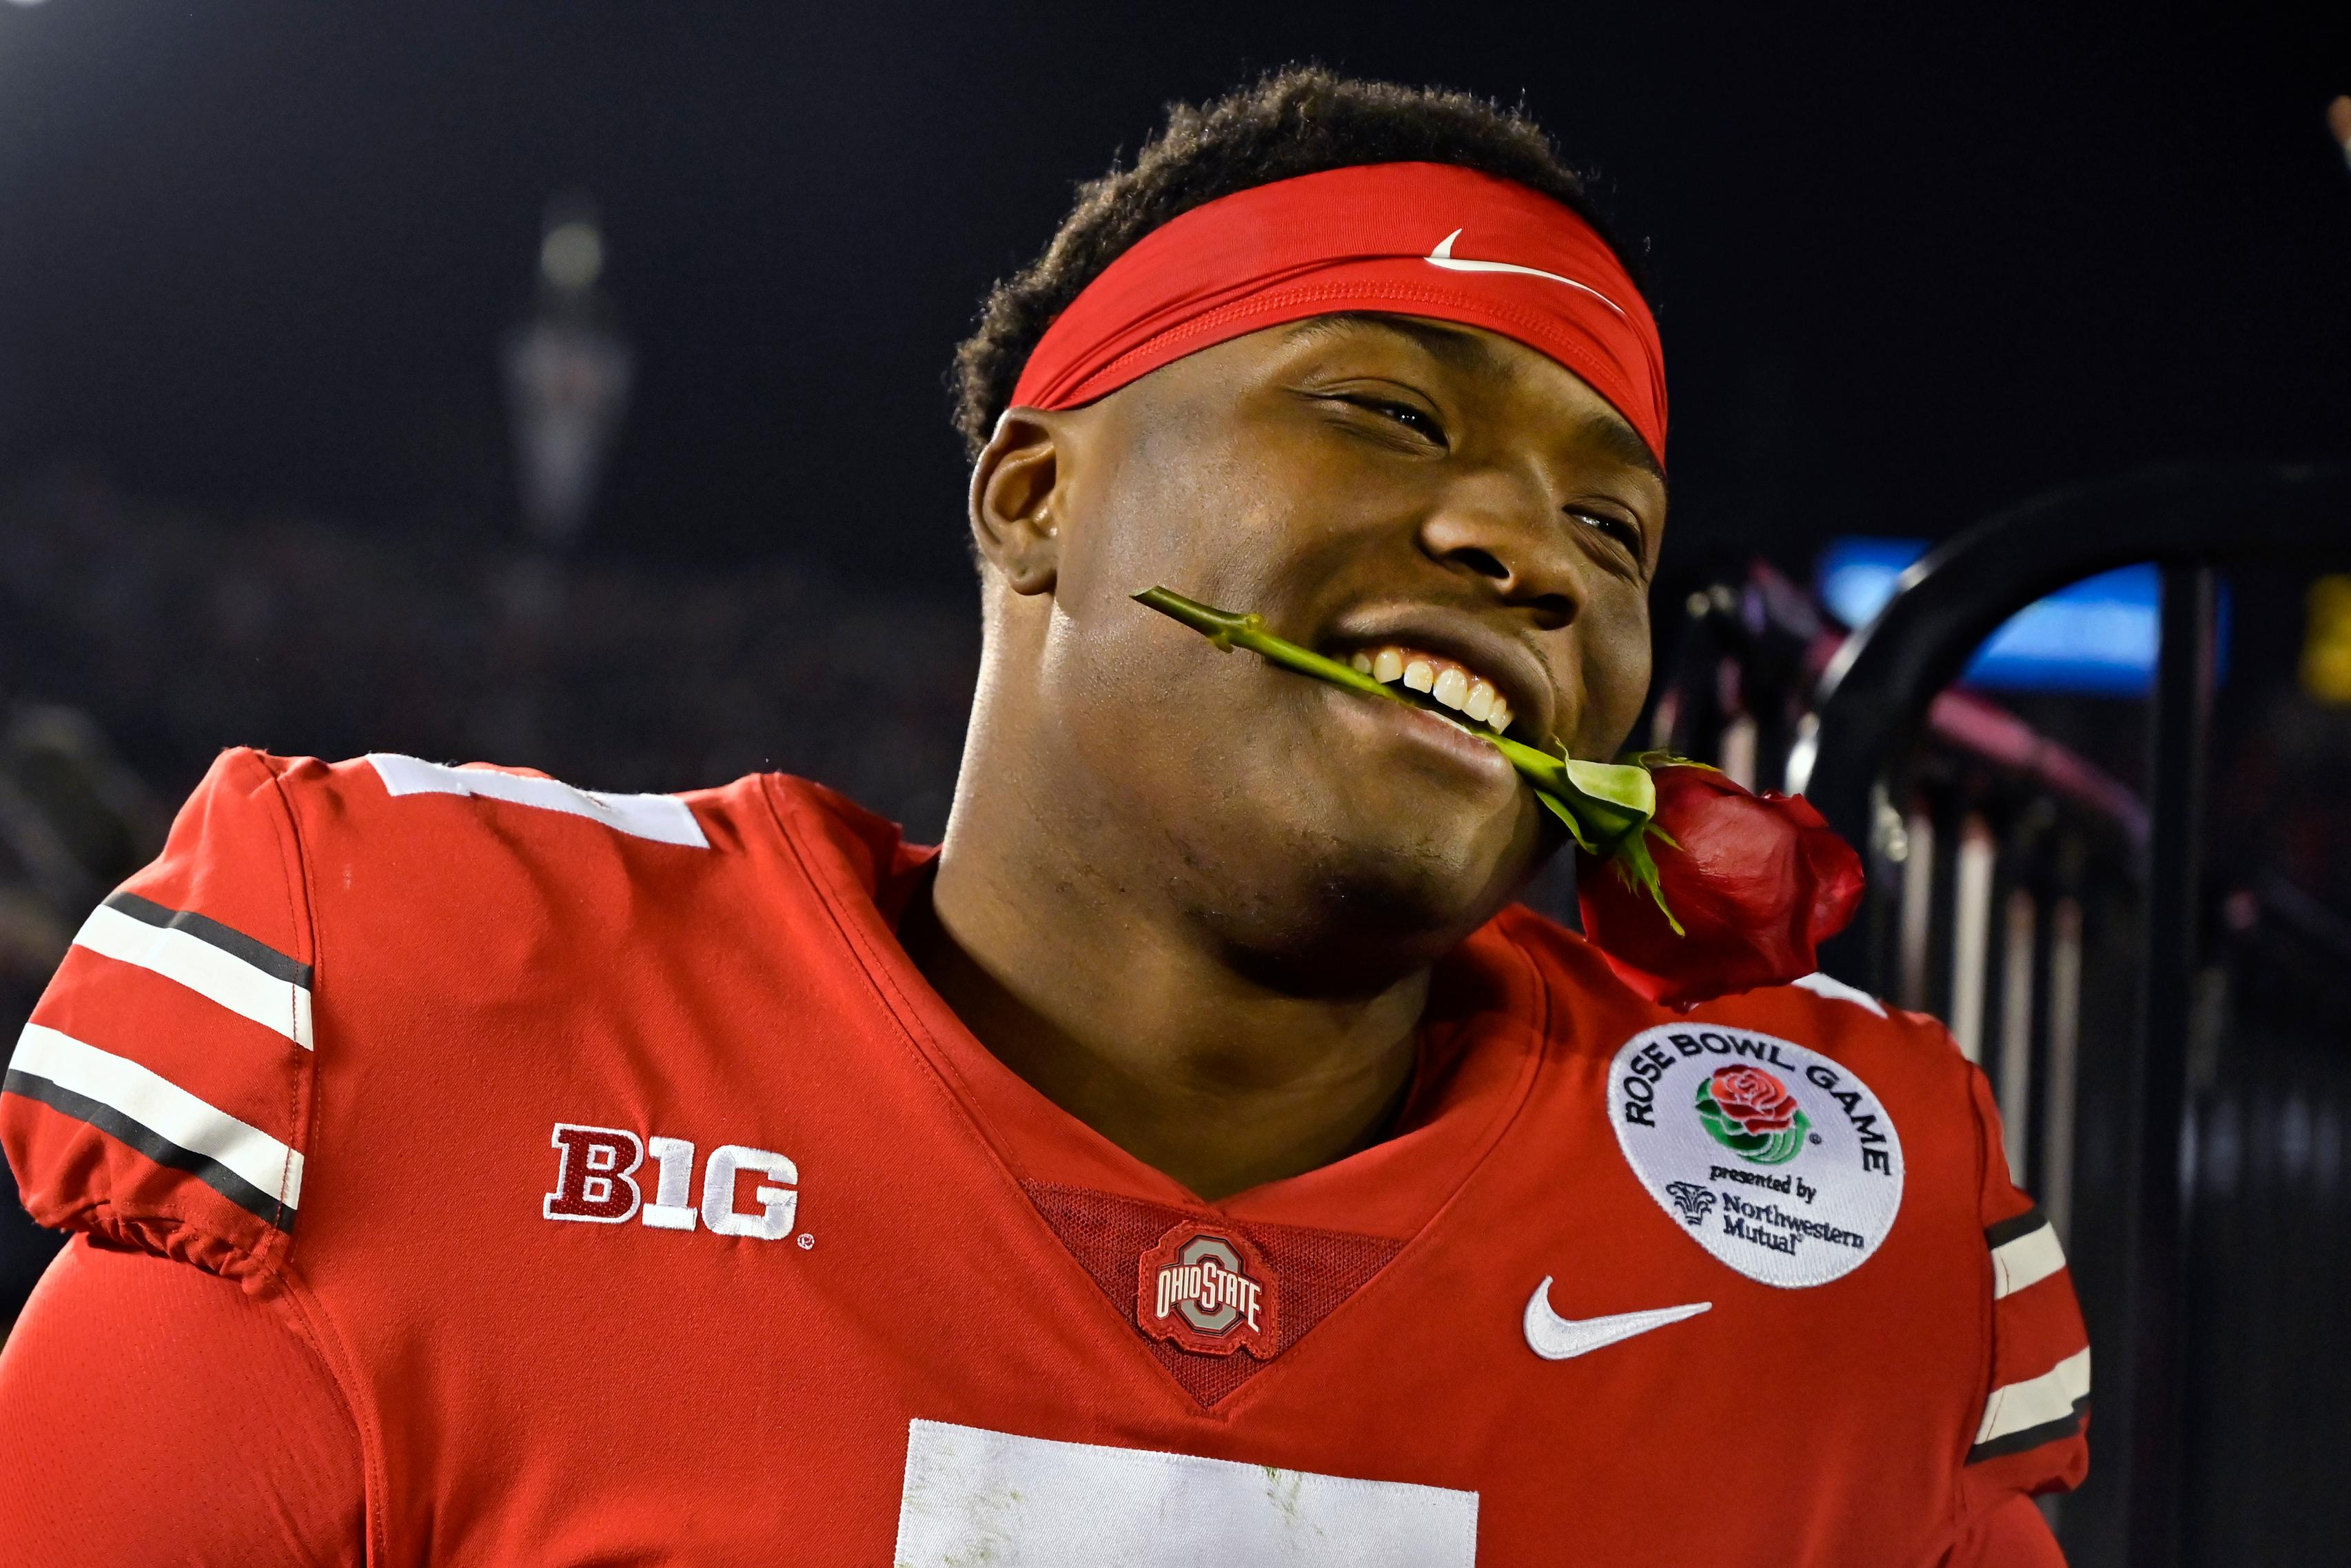 Ohio State quarterback Dwayne Haskins smiles, with a rose between his teeth, after Ohio State defeated Washington 28-23 in the Rose Bowl NCAA college football game Tuesday, Jan. 1, 2019, in Pasadena, Calif. (AP Photo/Mark J. Terrill)